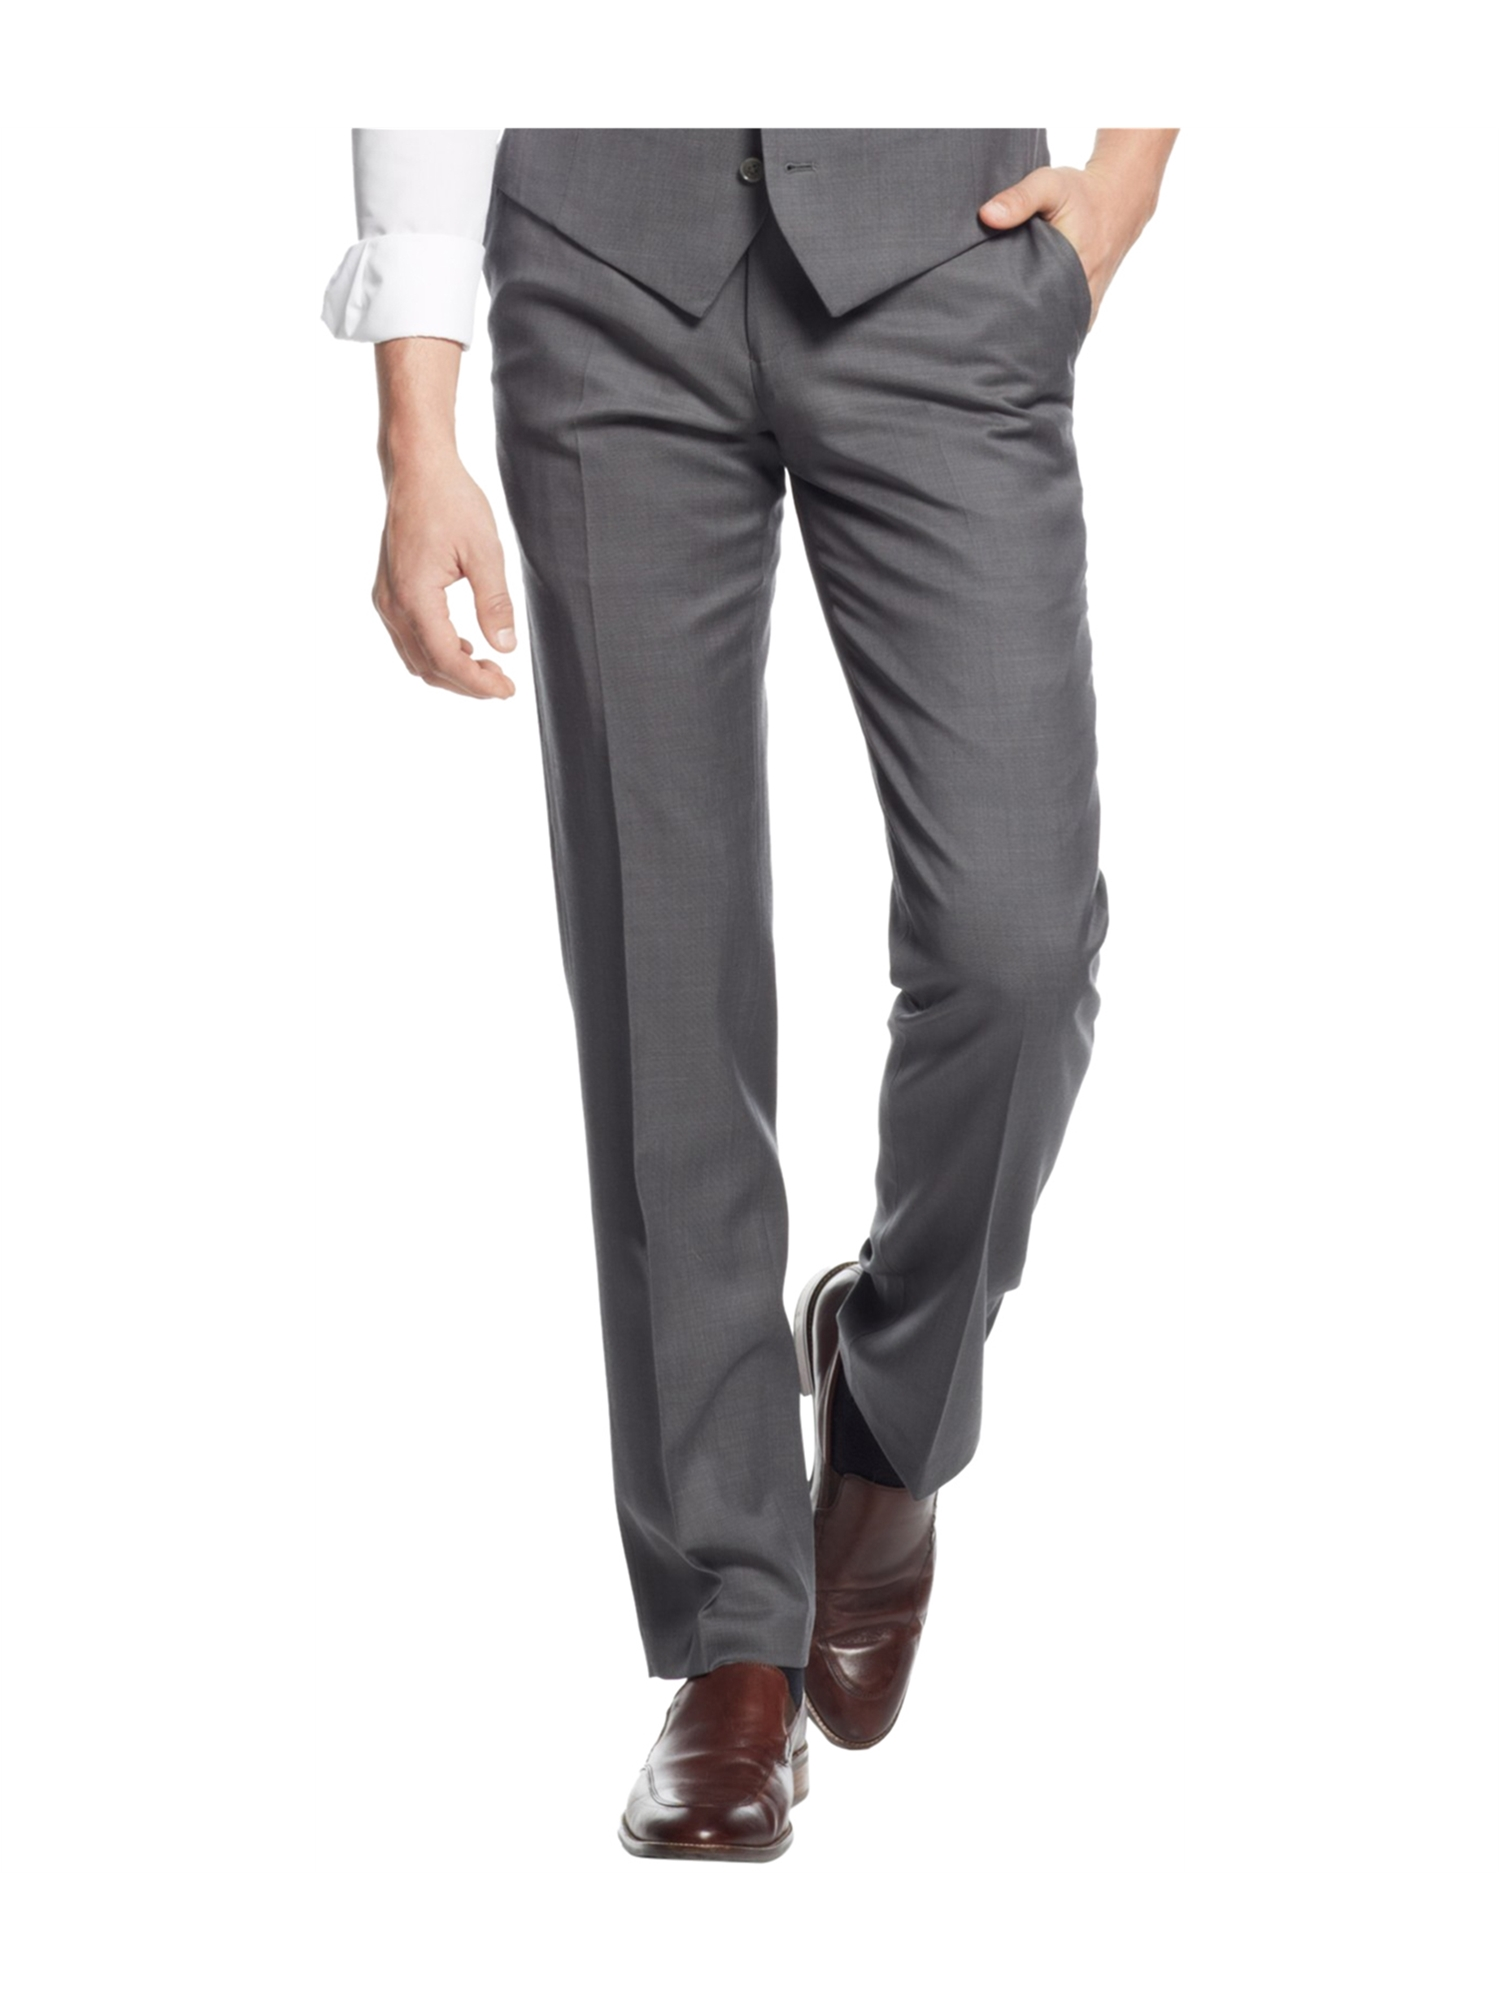 bar III Mens Pindot Dress Slacks